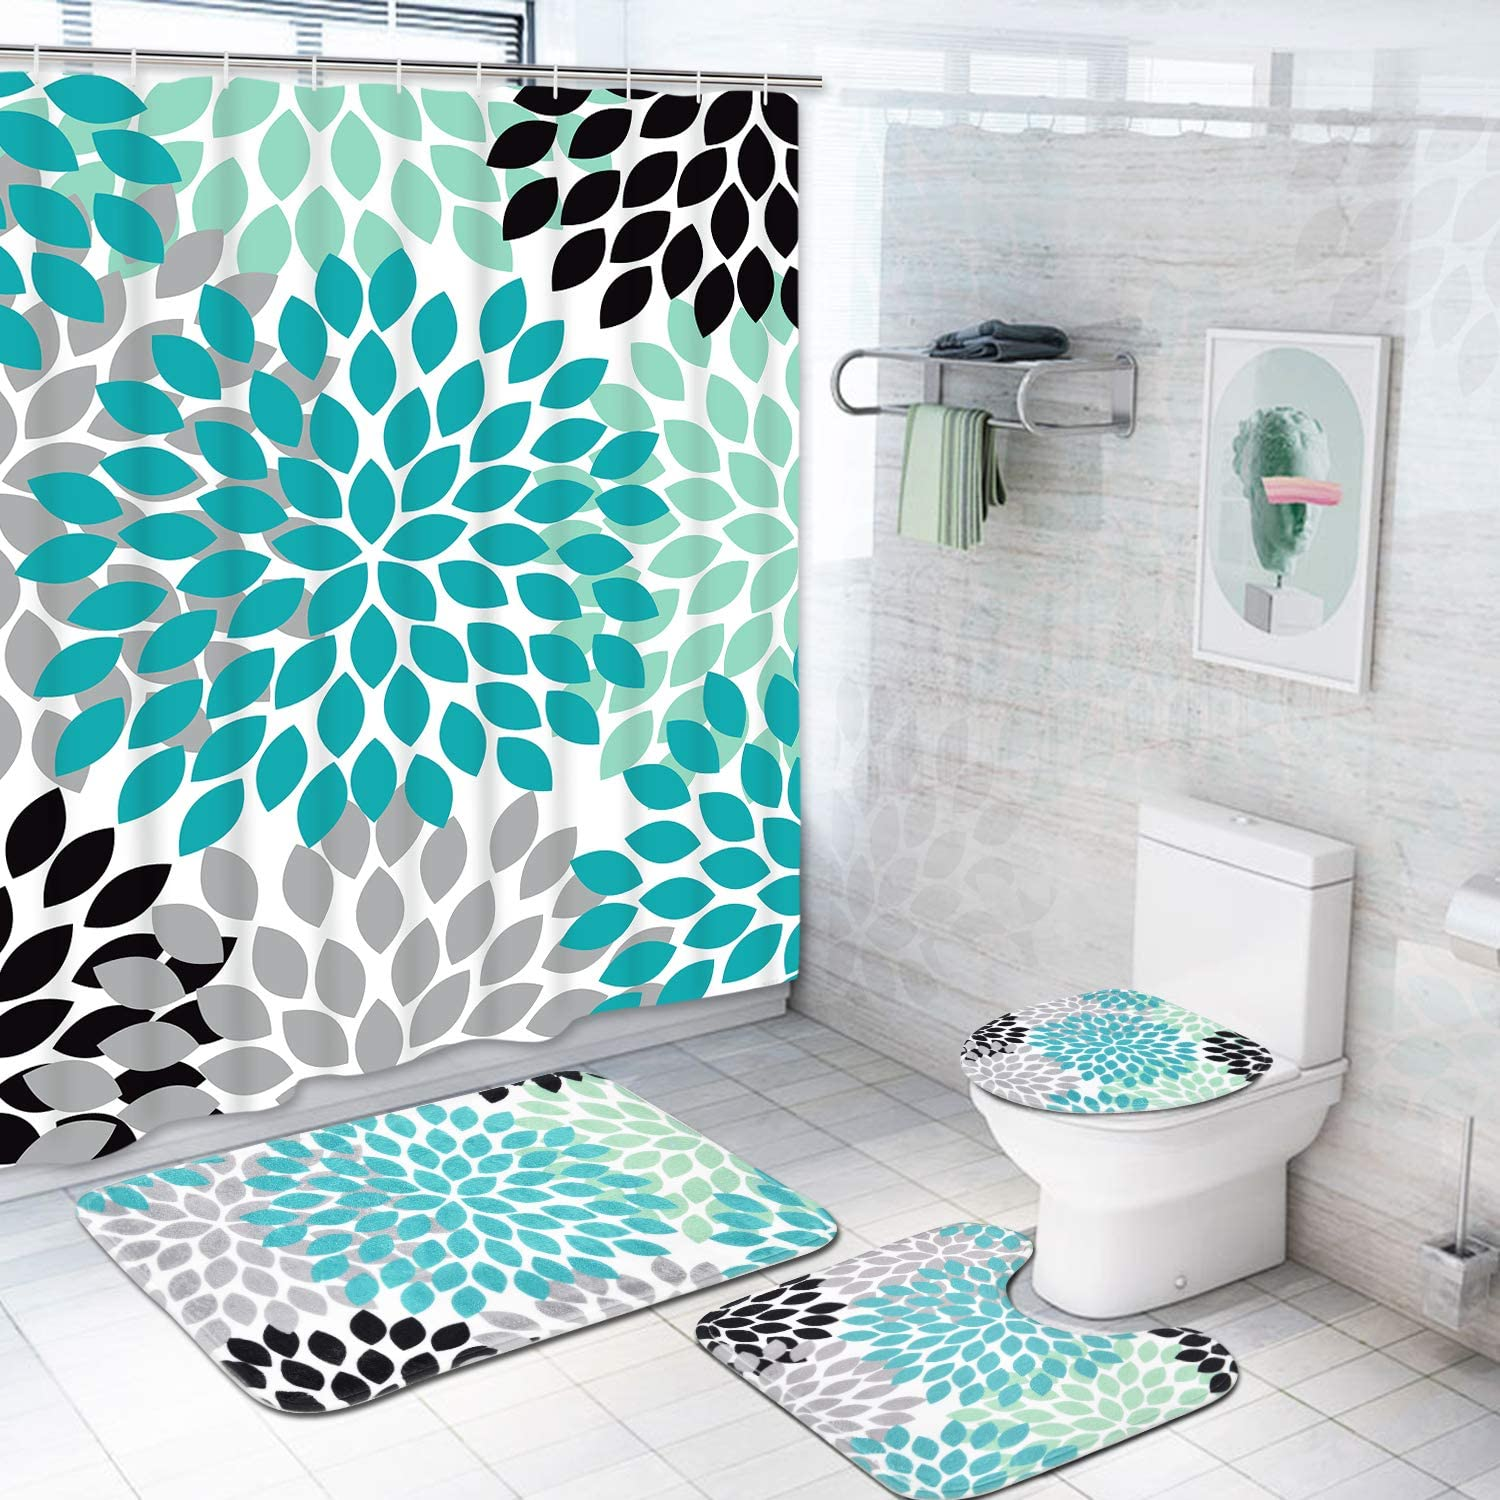 Amazon Com Krelymics 4 Piece Dahlia Pinnata Shower Curtain Sets With Non Slip Rug Toilet Lid Cover Bath Mat And 12 Hooks Flower Shower Curtain Durable Waterproof Bath Curtain Furniture Decor